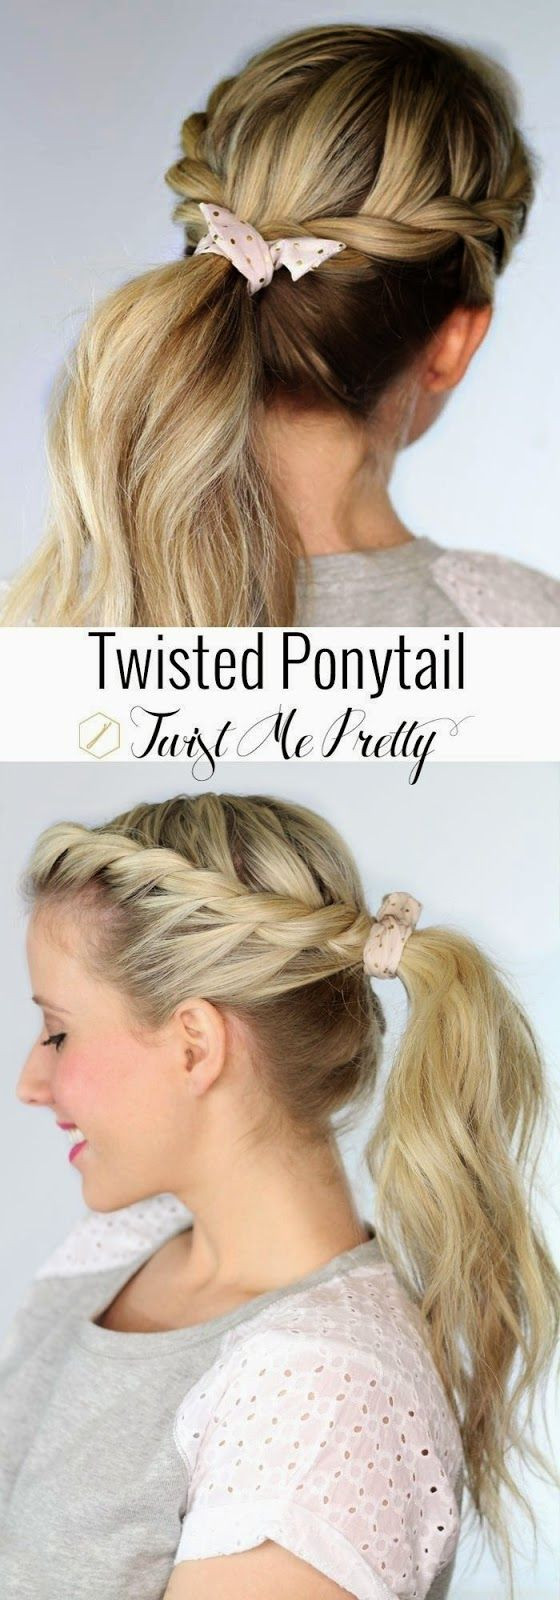 Best ideas about Cute Date Hairstyles . Save or Pin Cute And Easy First Date Hairstyle Ideas Page 3 of 4 Now.